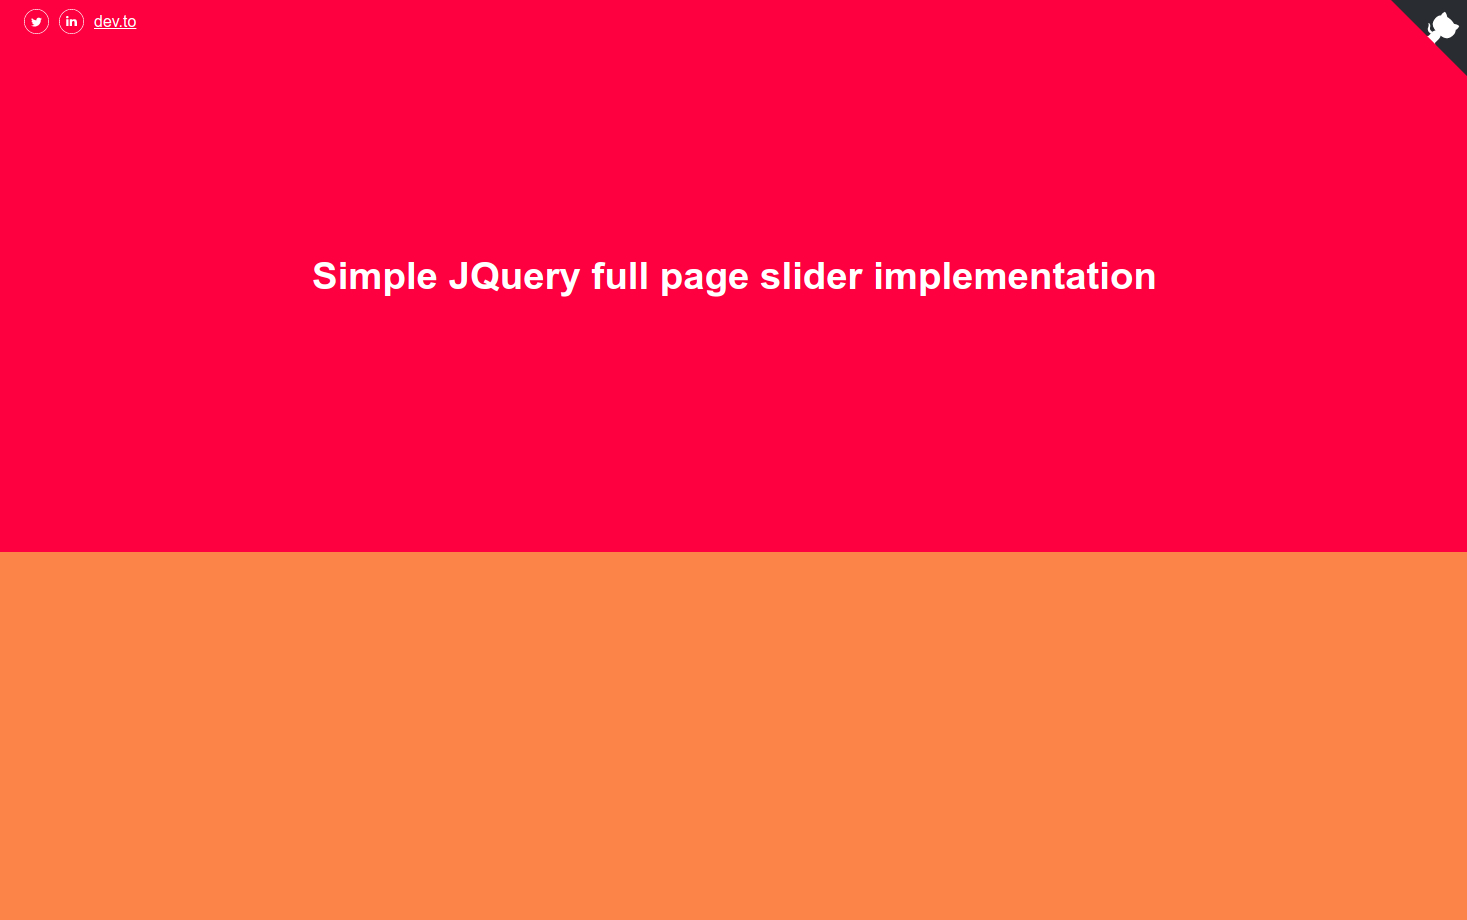 /create-your-own-full-page-slider-implementation-with-jquery-tutorial-8xbb36qh feature image